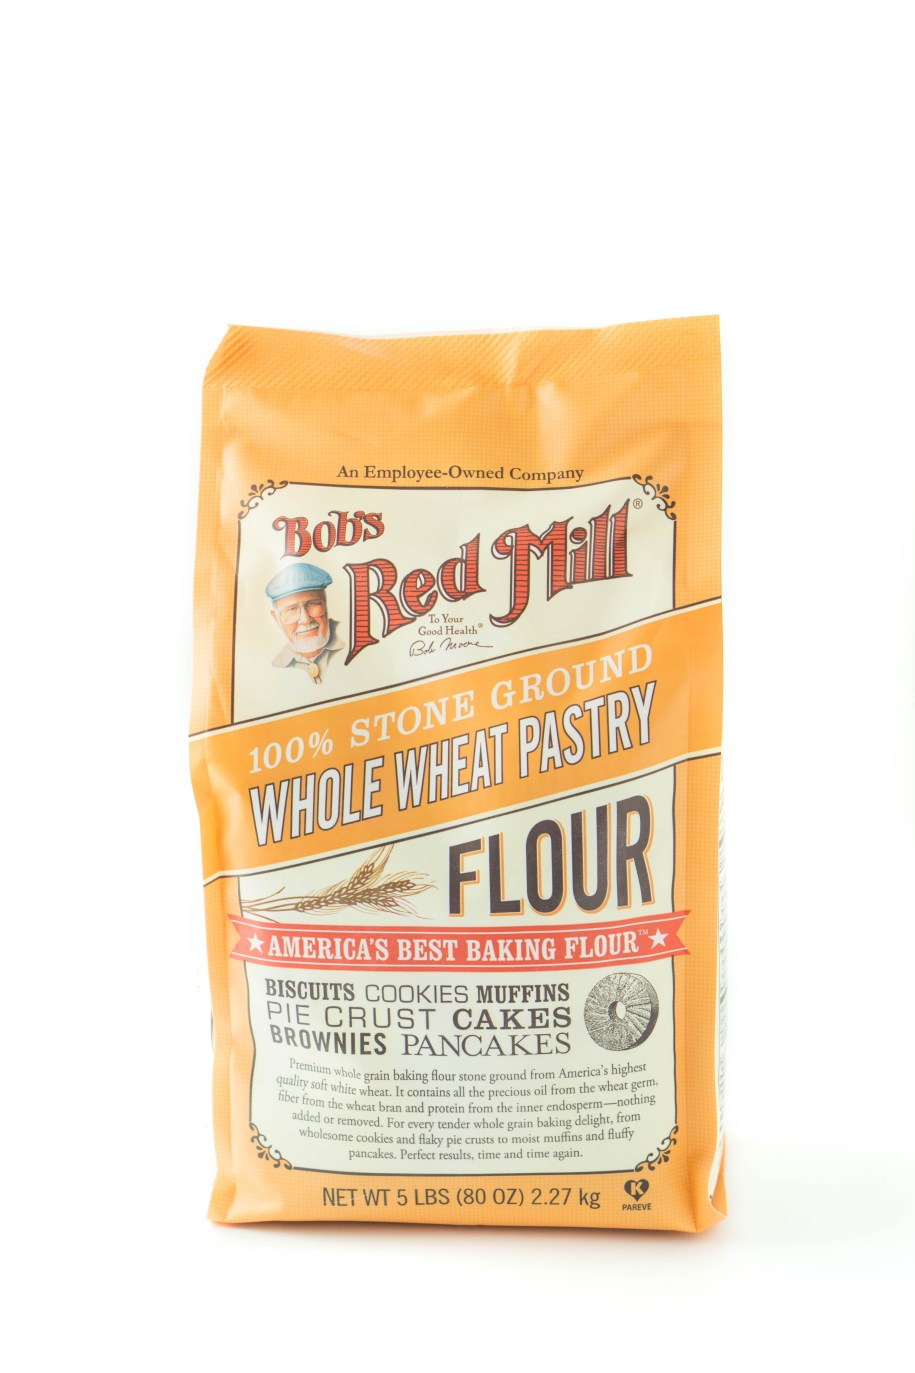 Bob's Red Mill Stone Ground Whole Wheat Pastry Flour - for healthy holiday baking mixes! www.wakeuptowaffles.com